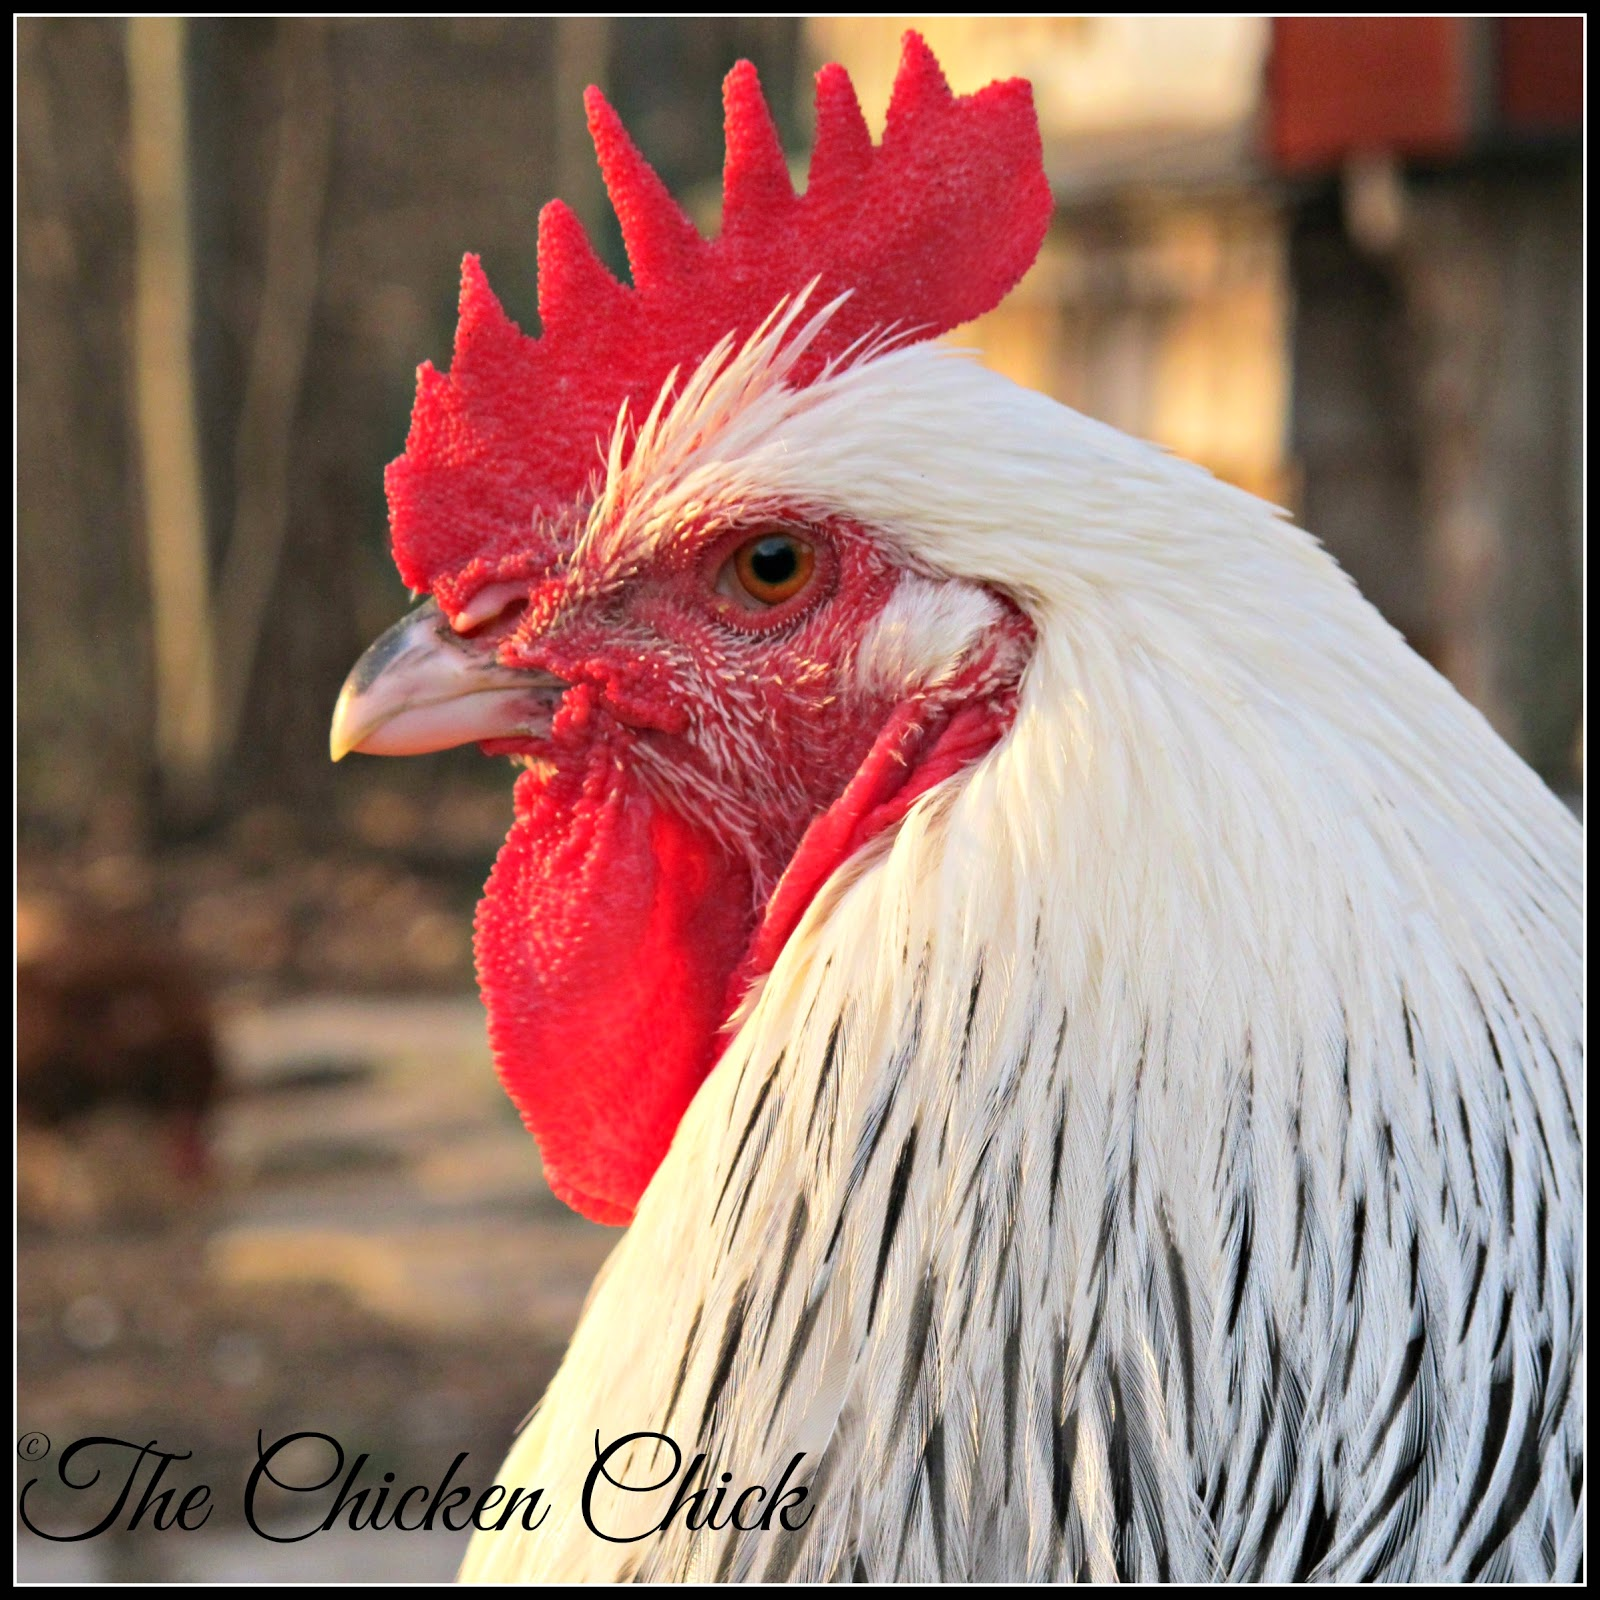 I thought I'd use this week's Flock Focus Friday to celebrate my beautiful boys at Blazing Trails Farm! I've got a major beef with the negative perceptions perpetrated by many rooster detractors. Until I began keeping chickens myself, I didn't realize that roosters are no noisier than barking dogs and while it's true that a rooster may crow at daybreak or in the middle of the night if disturbed, those noises are easily eliminated by either sound and light-proofing the coop or by bringing the rooster into another interior space (garage, basement).